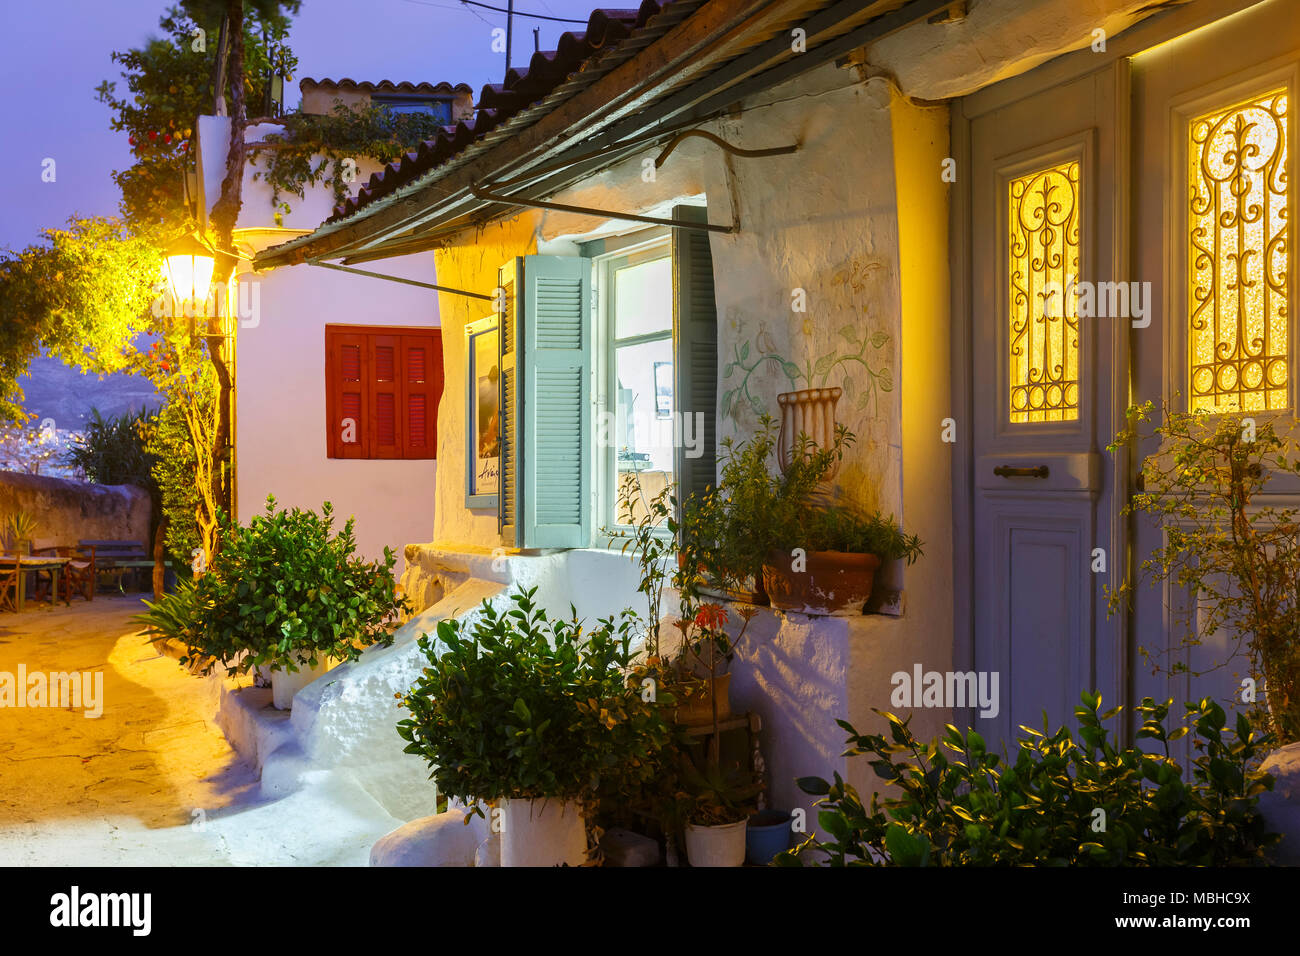 Houses in Anafiotika neighborhood of Athens in Greece. - Stock Image